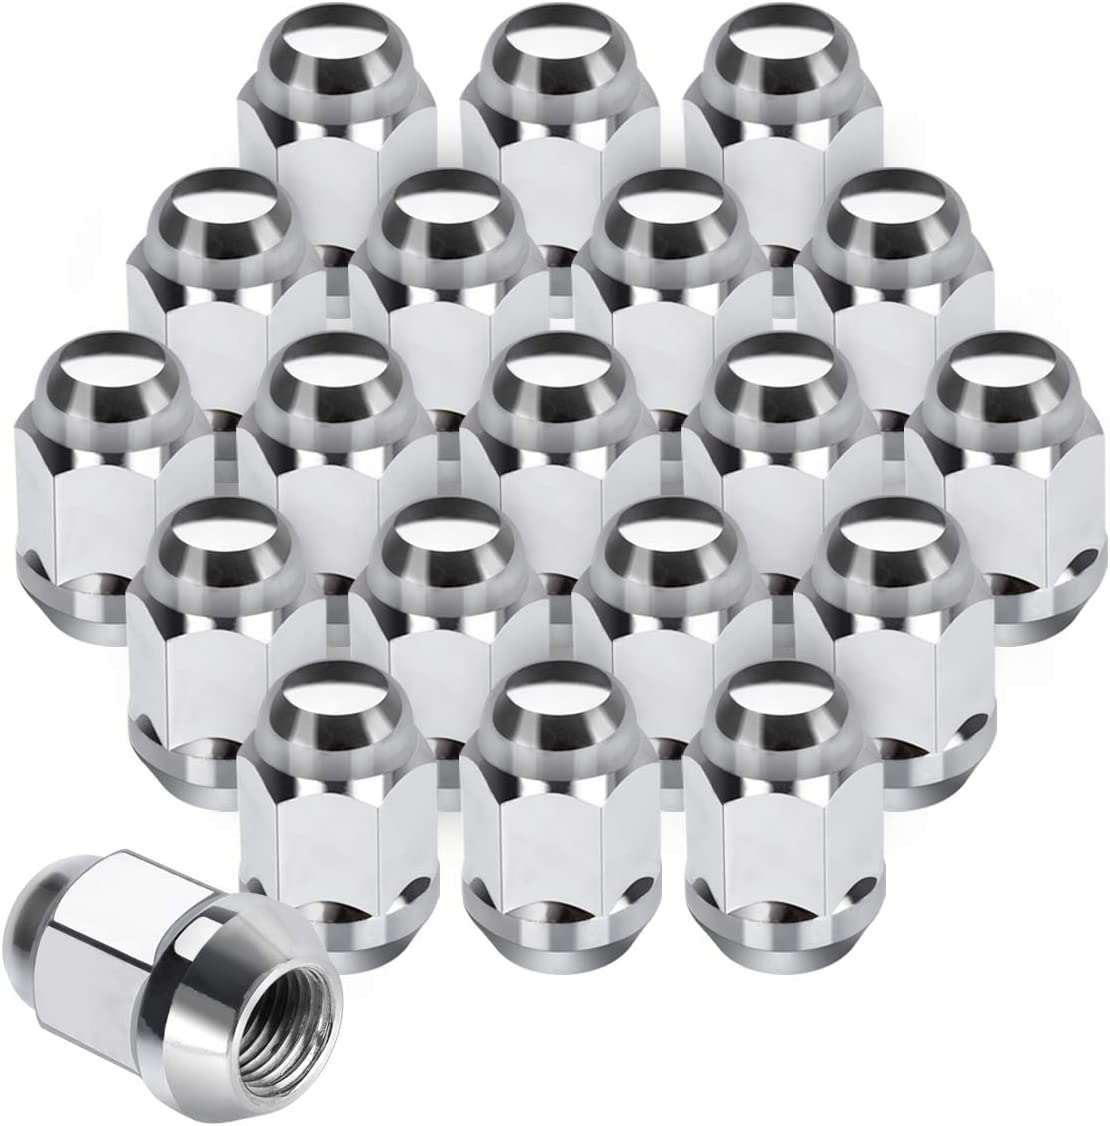 Buyer Needs to Review The spec 20pcs Chrome M12x1.75 Wheel Lug Nuts fit 2008 Lincoln Navigator May Fit OEM Rims